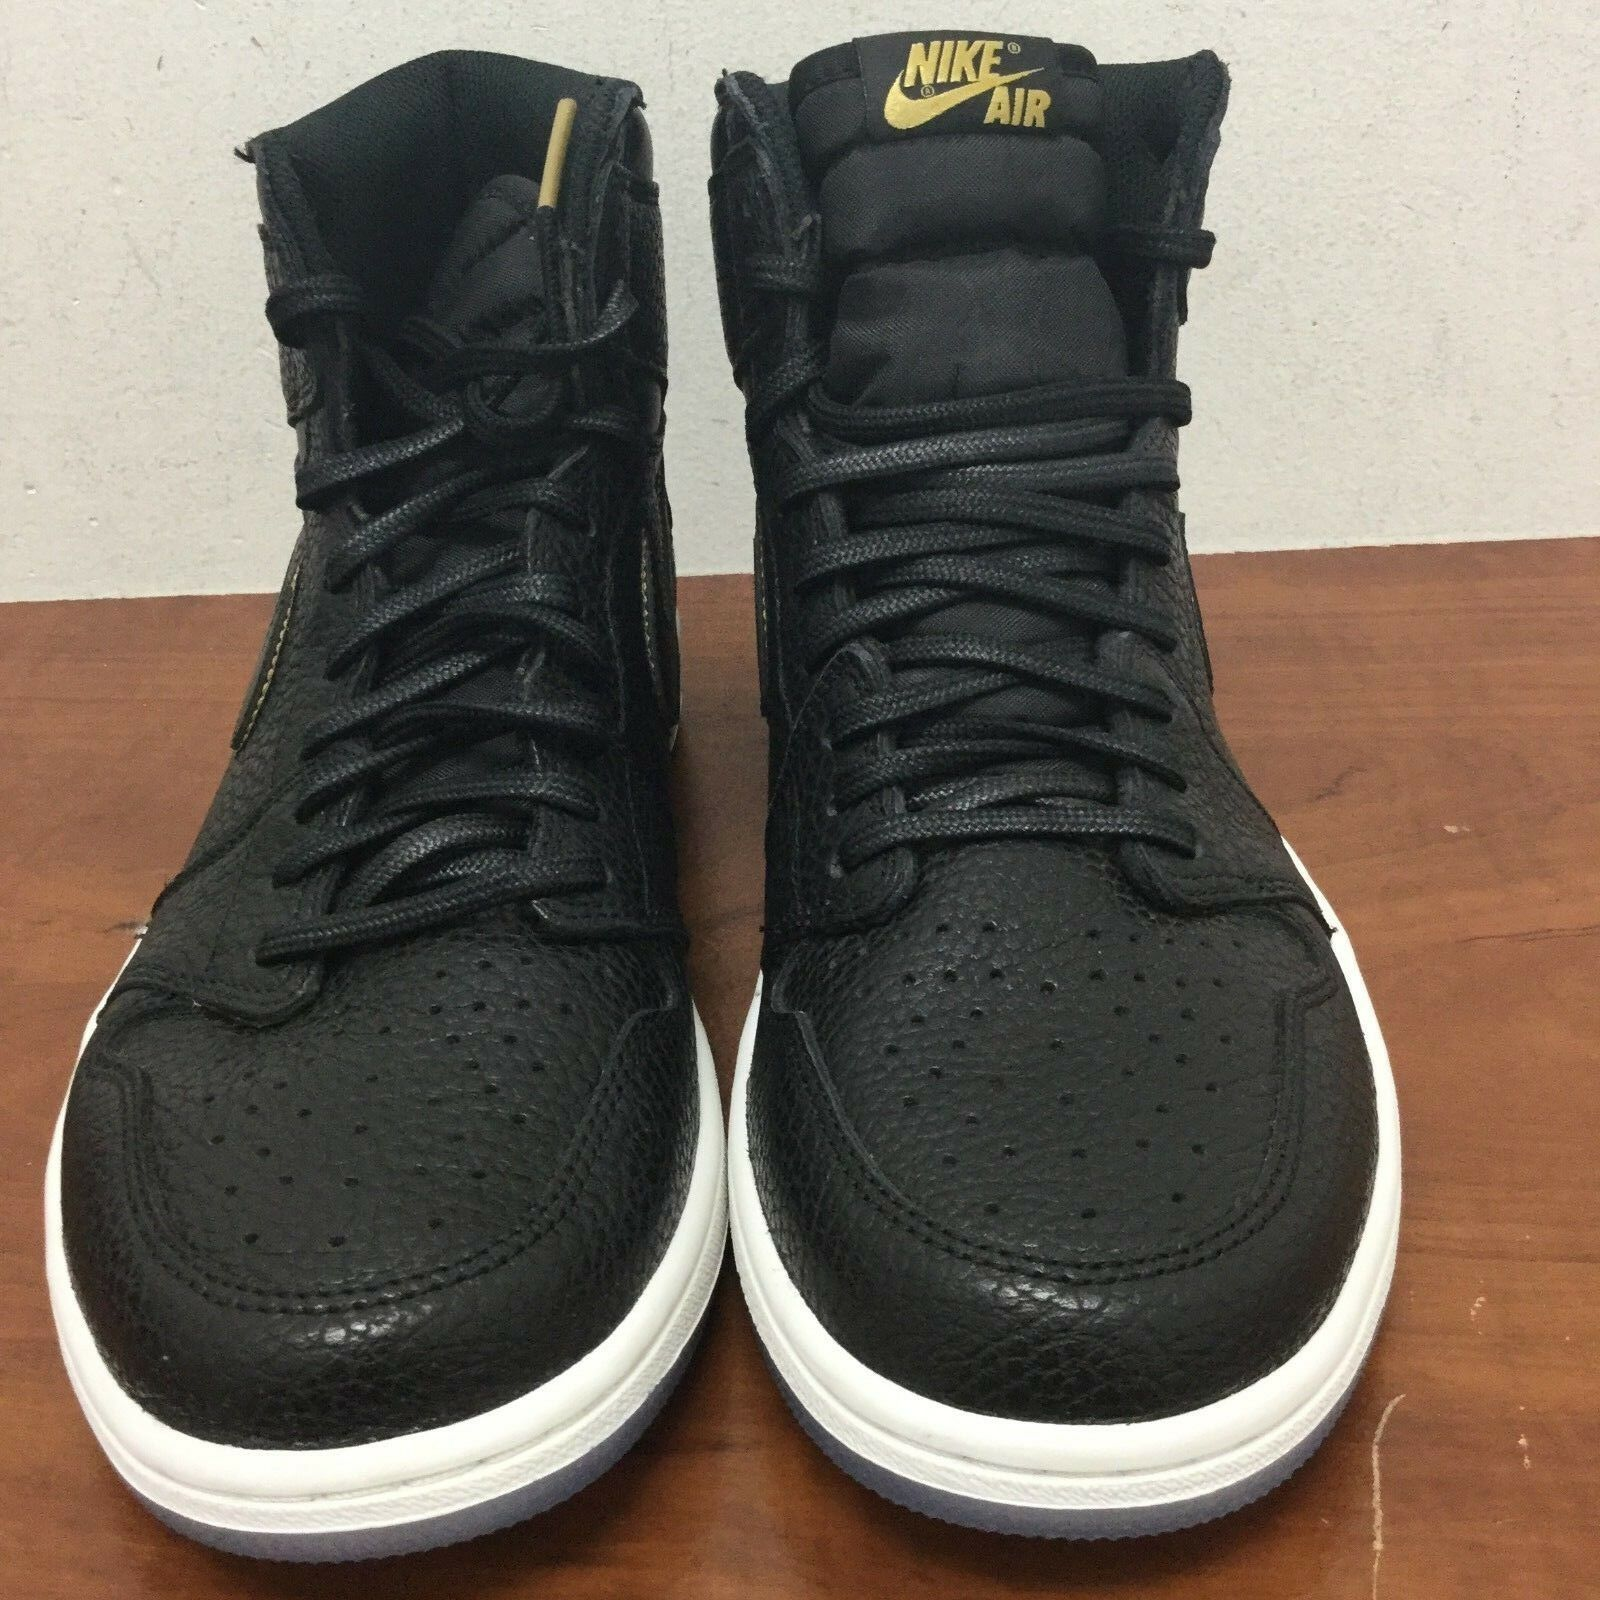 Nike Air Jordan Retro 1 High OG Black Metallic gold 10.5 M US Men's (555088 031)